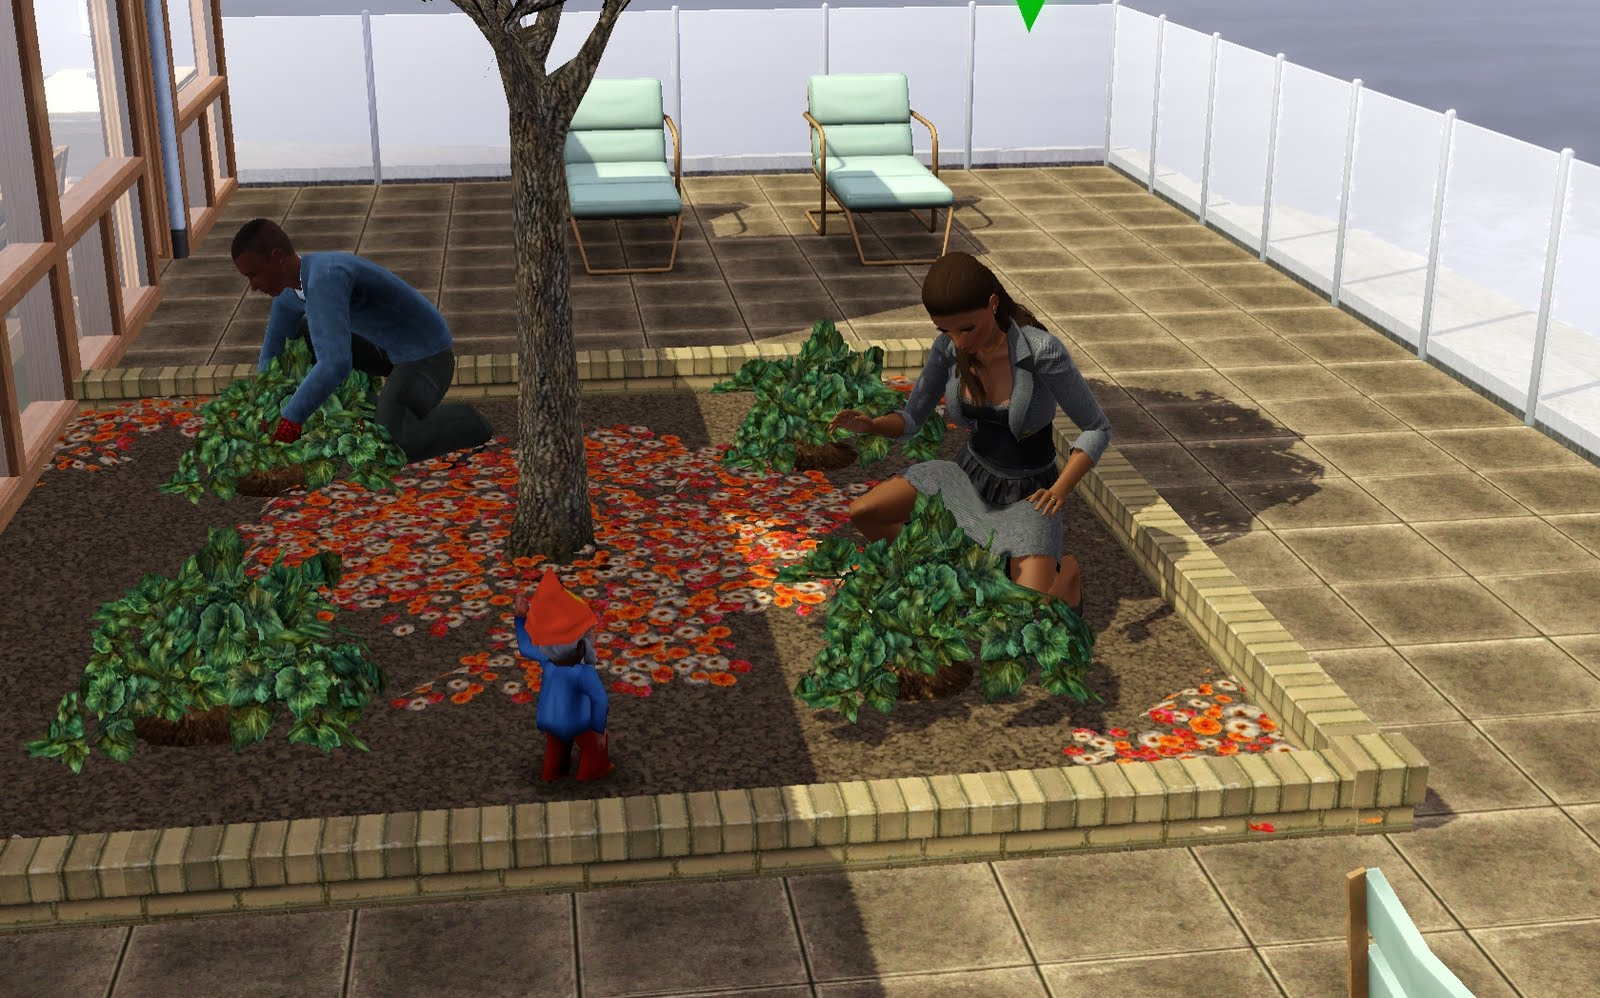 Summer's Little Sims 3 Garden How To Build A Rooftop Or Balcony